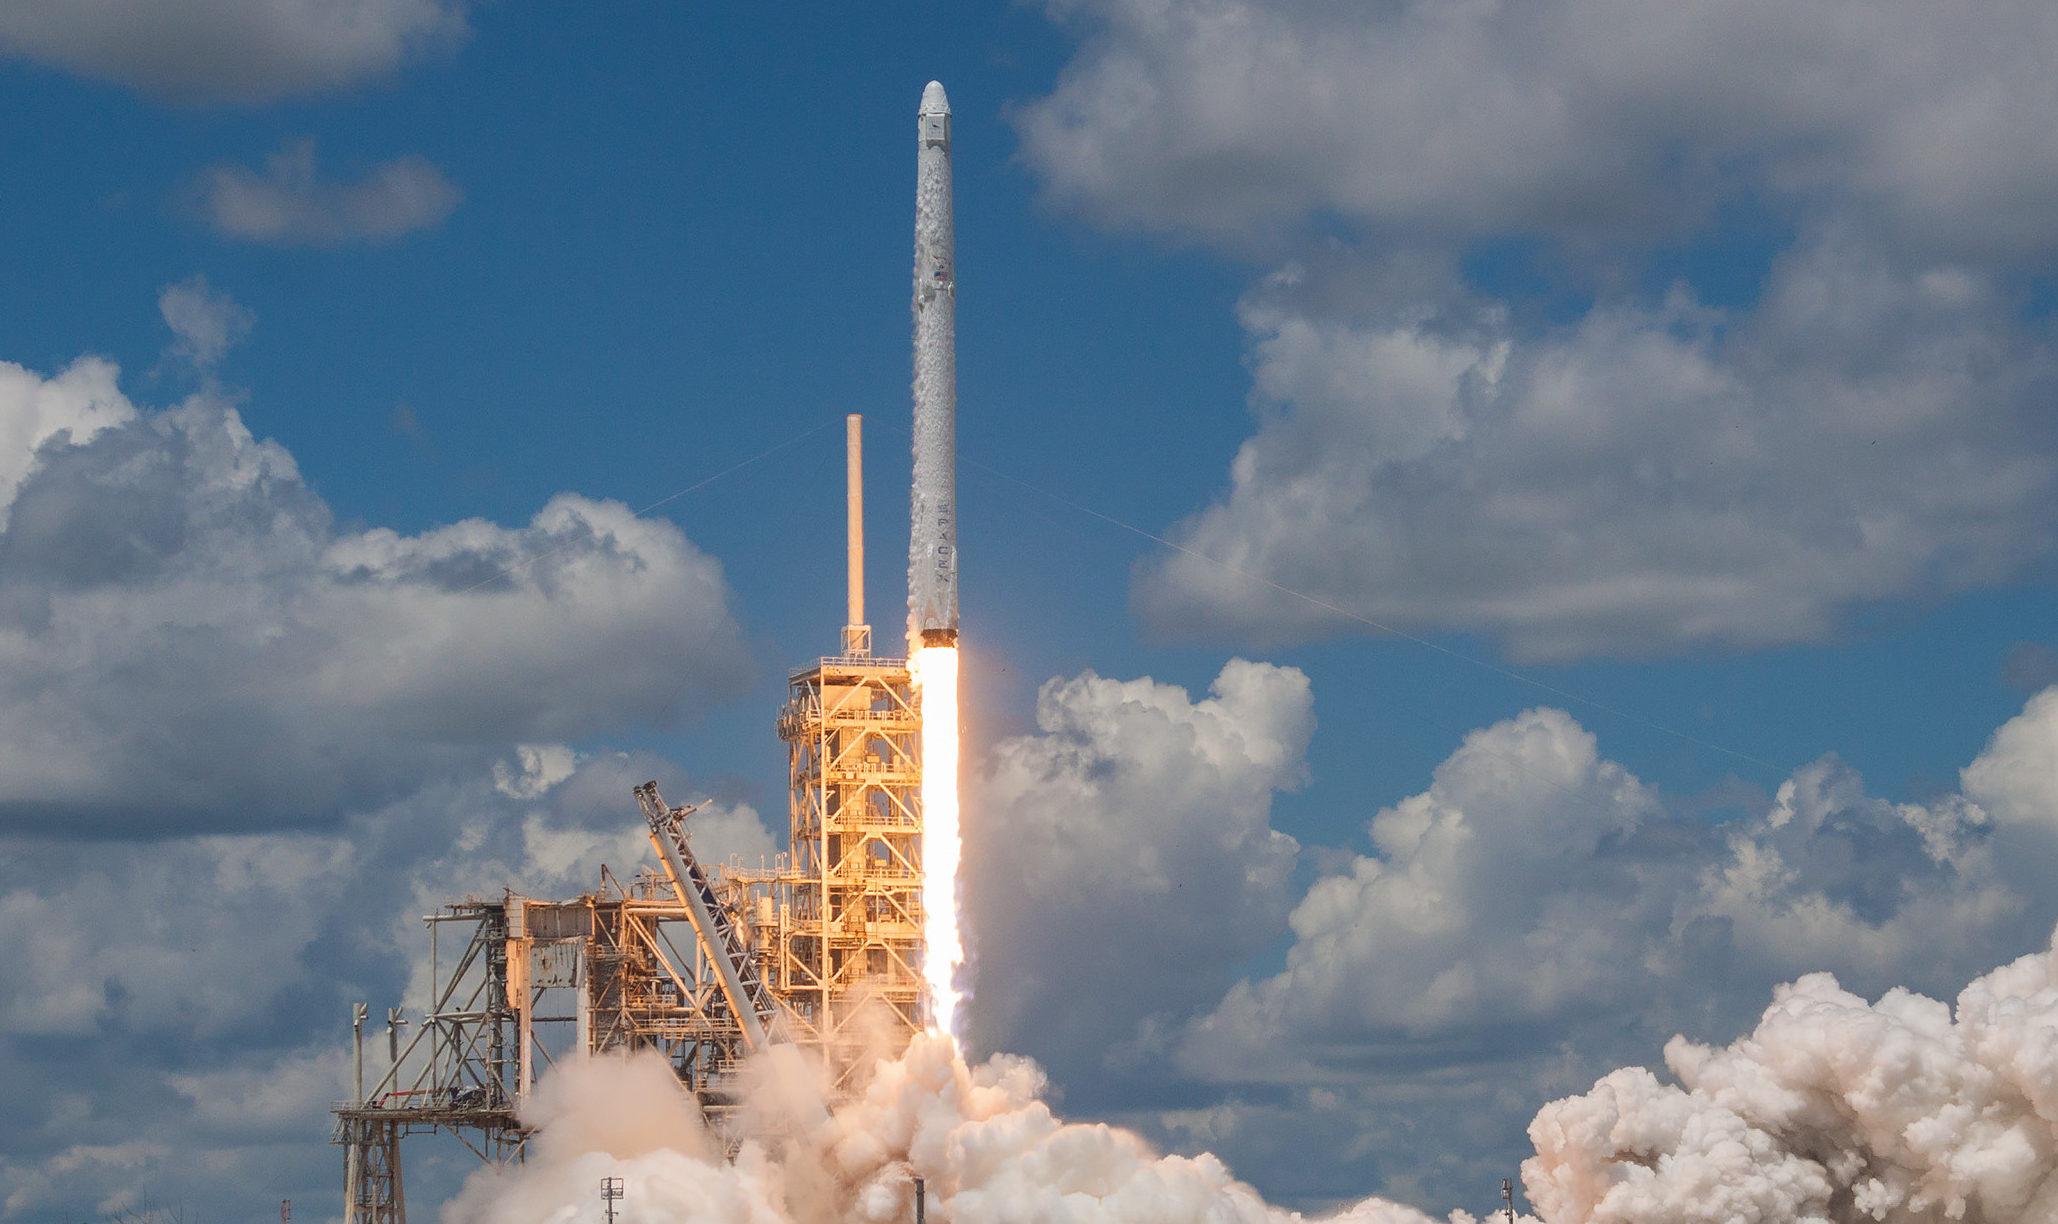 CRS-12 liftoff (SpaceX)